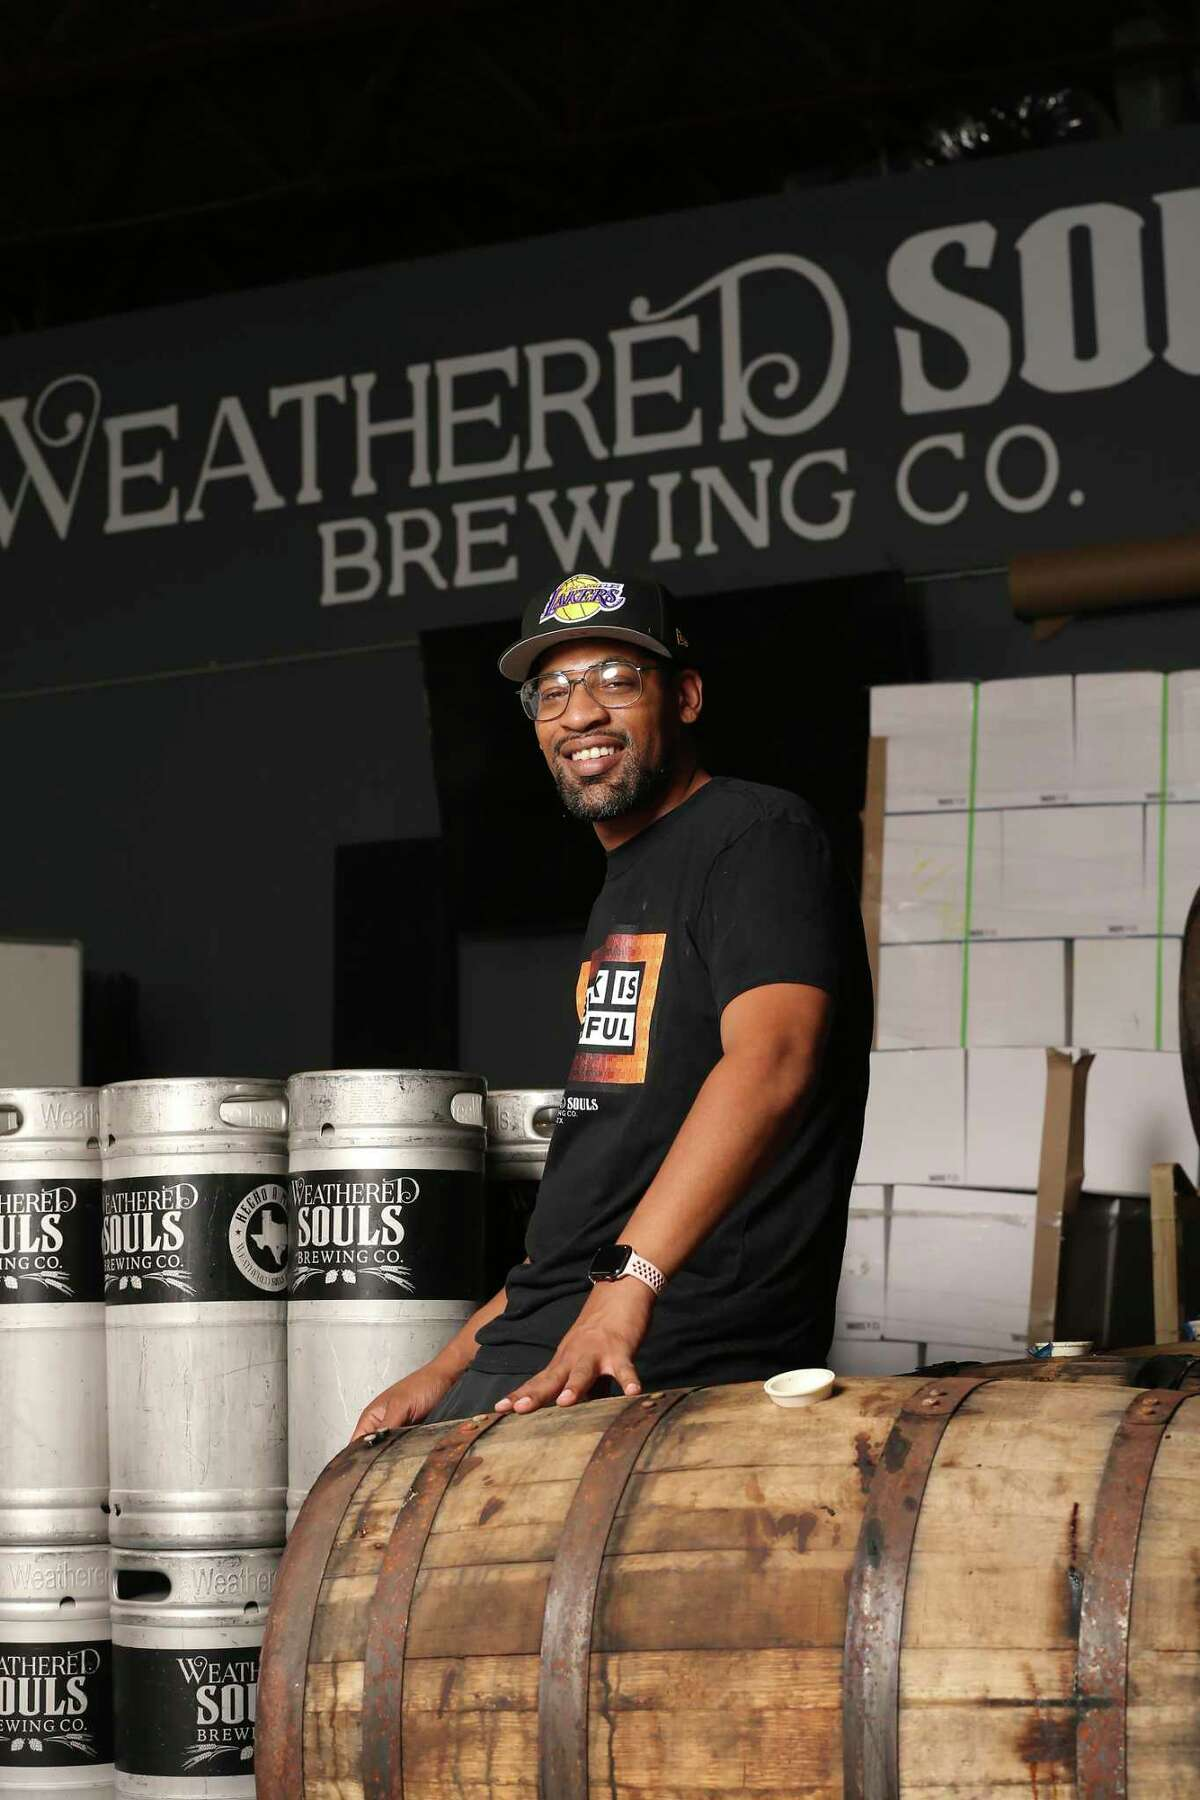 Weathered Souls Brewing Co. founder and brewer Marcus Baskerville speaks on the Black is Beautiful stout ale campaign, Friday, May 28, 2021. One year ago, he started the campaign, that has gone internationally, to raise awareness to the injustices people of color face.